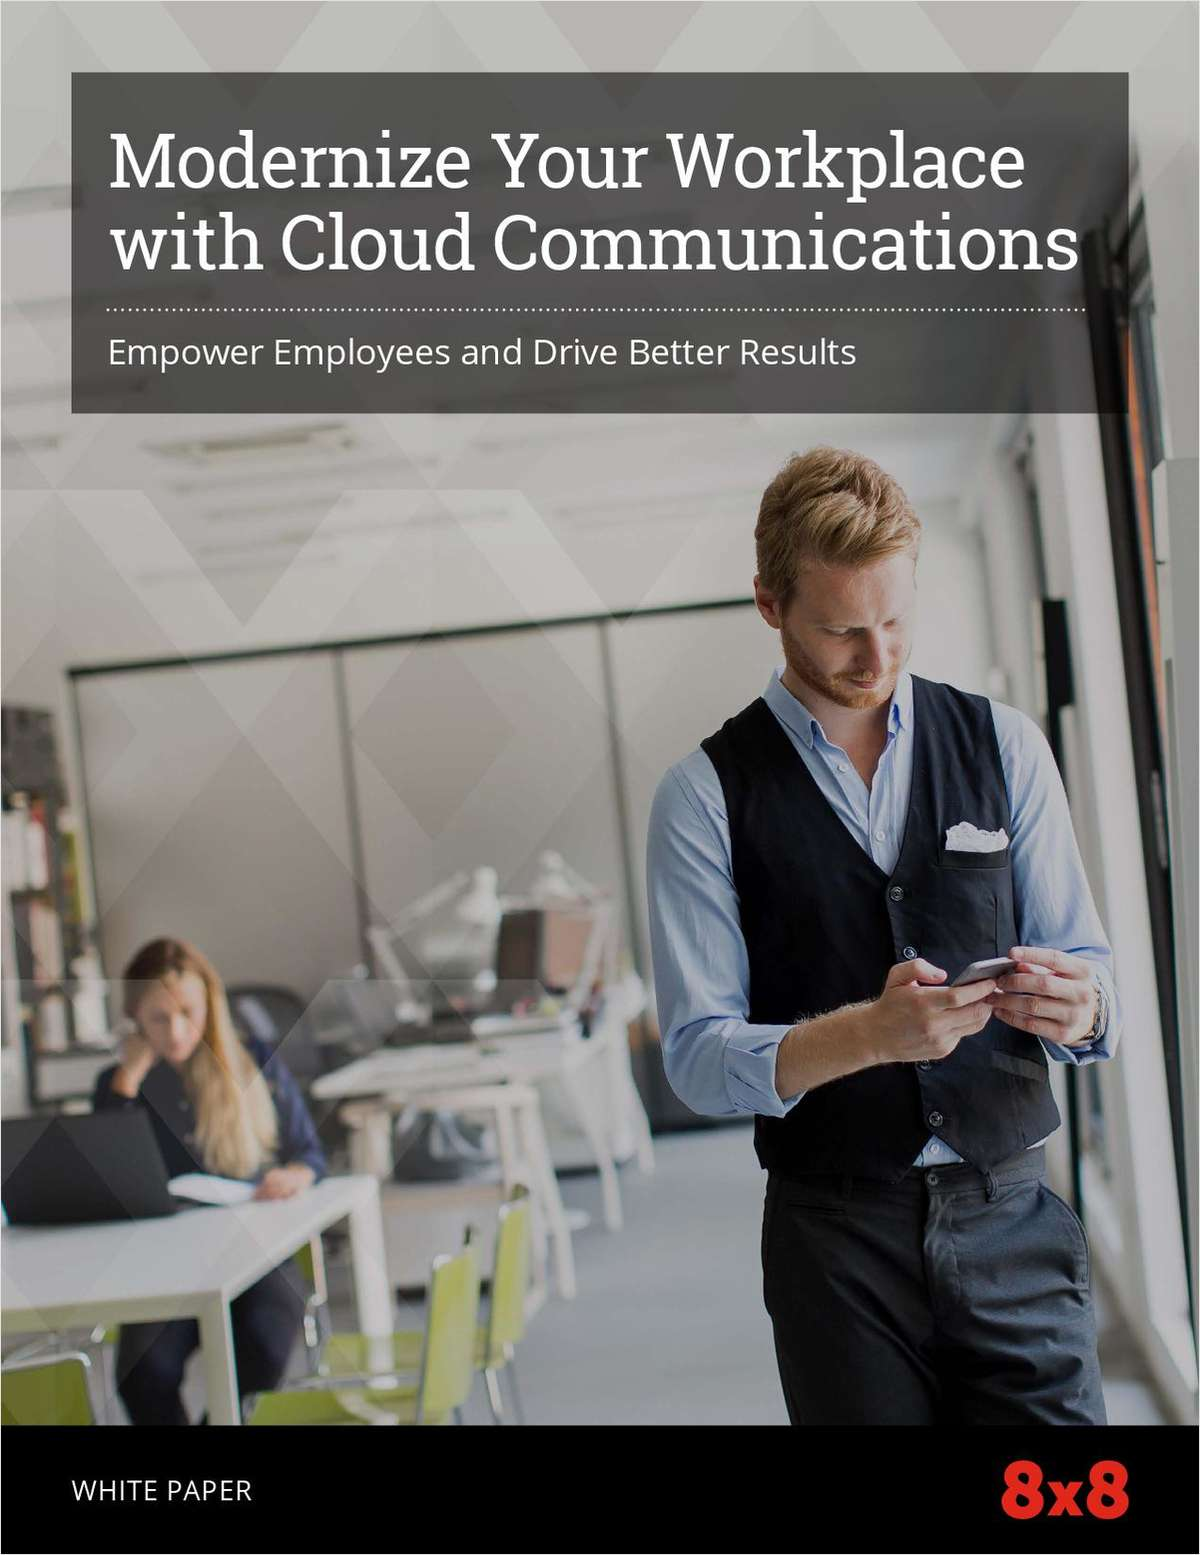 How to Implement Cloud Communications to Maximize Productivity and Employee Engagement